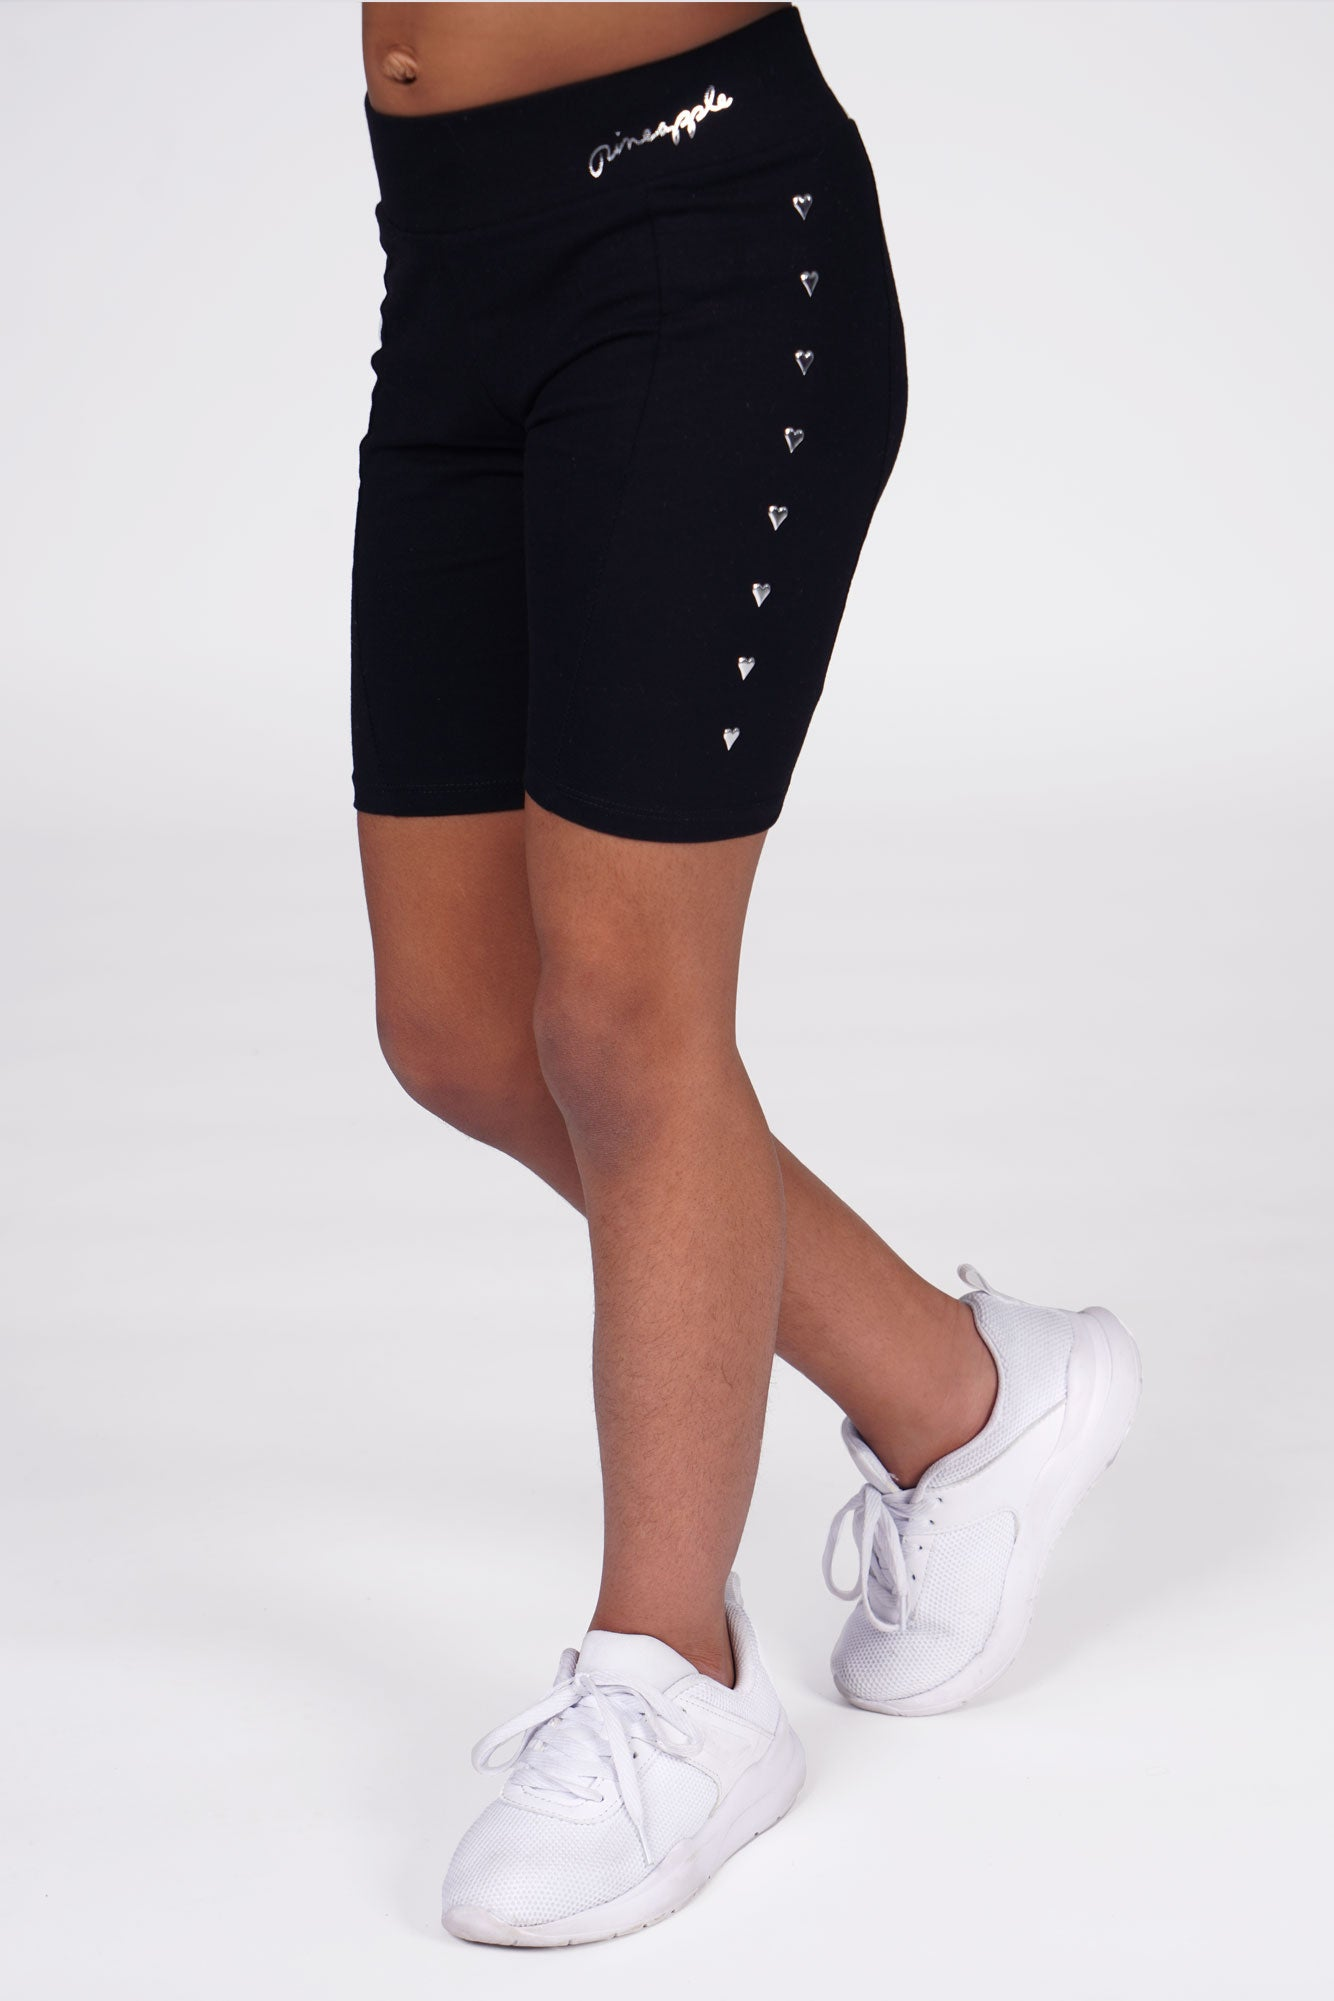 Girl wearing Pineapple Heart Stud Black Cycling Shorts